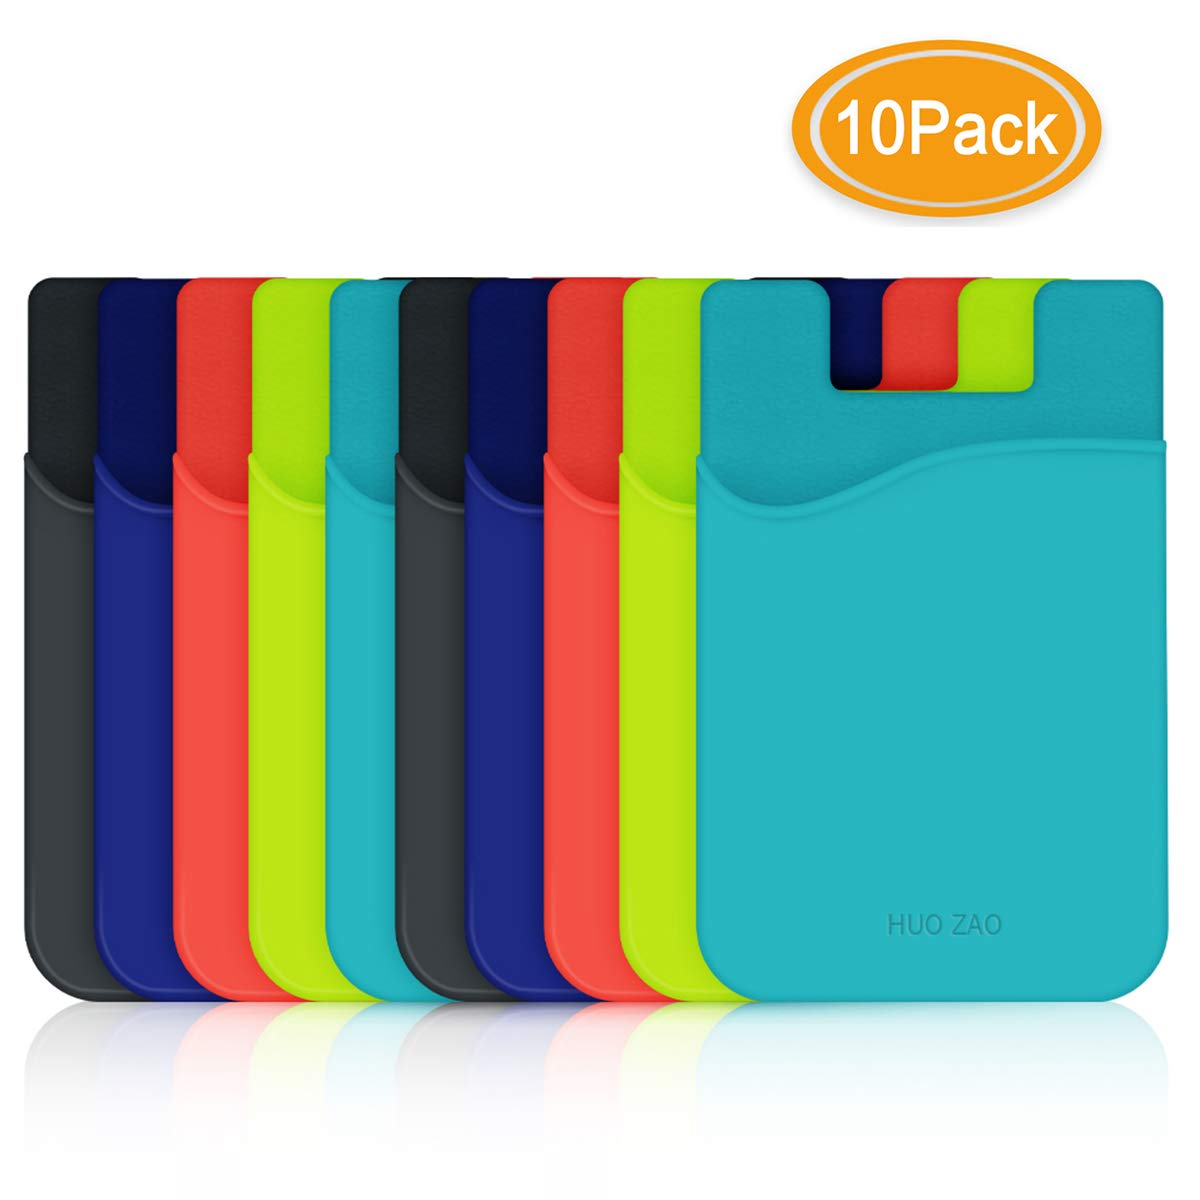 HUO ZAO Phone Credit Card Holder, Silicone Sticky Phone Wallet 3M Adhesive Stick-on Wallet Compatible with Apple iPhone Samsung Galaxy Android Cell Phone Table Multi Colors - 10 Pack